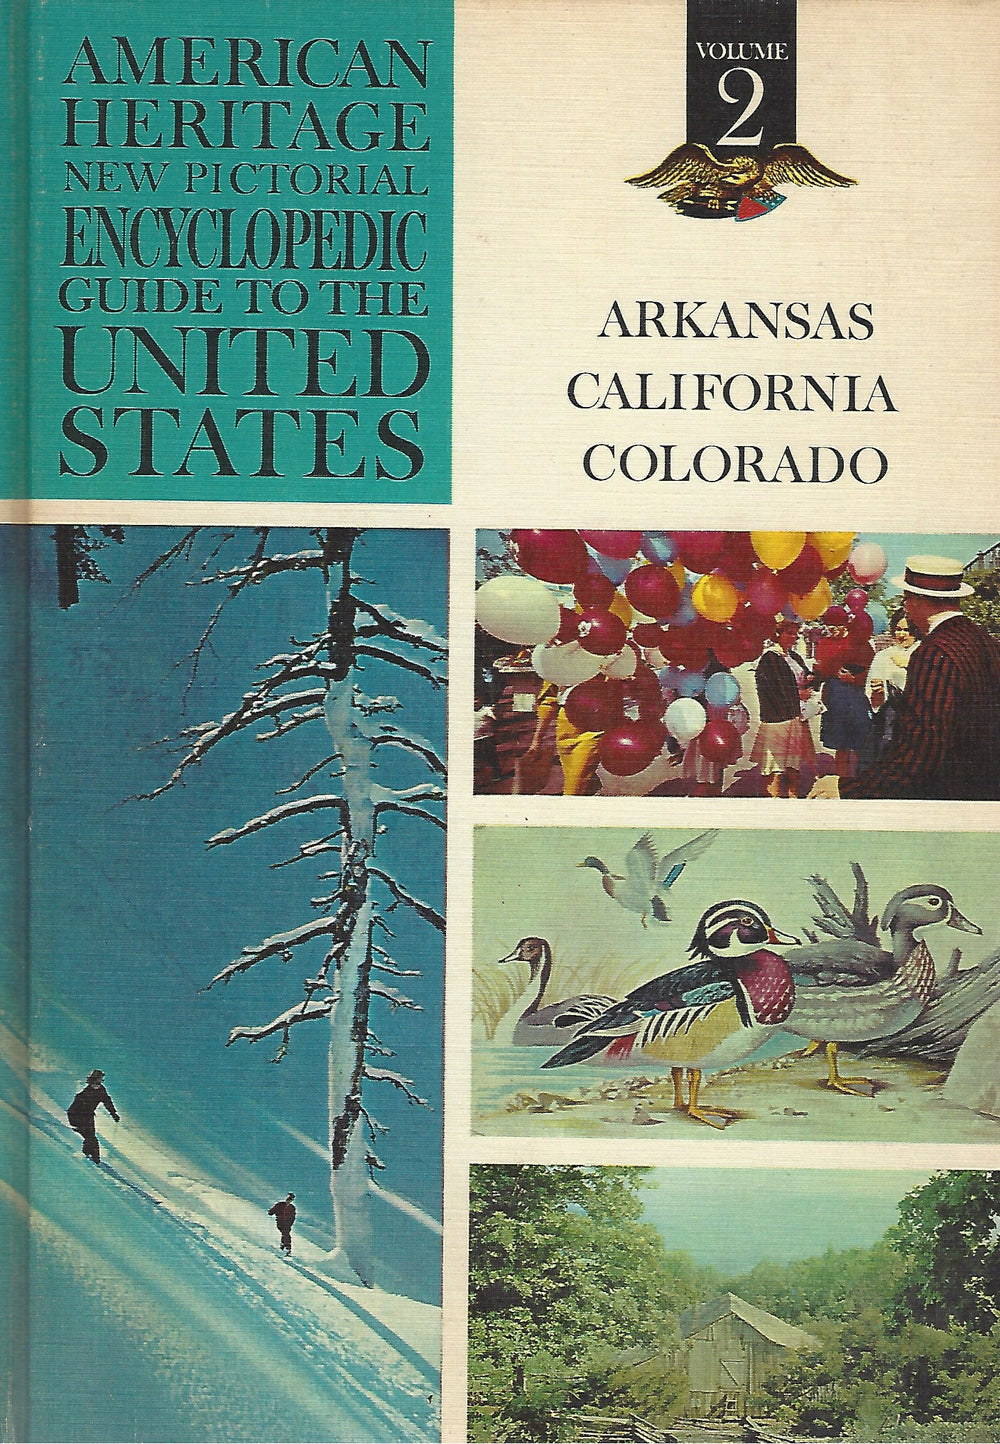 American Heritage New Pictorial Encyclopedic Guide to the United States:  Volume 2   (1965)